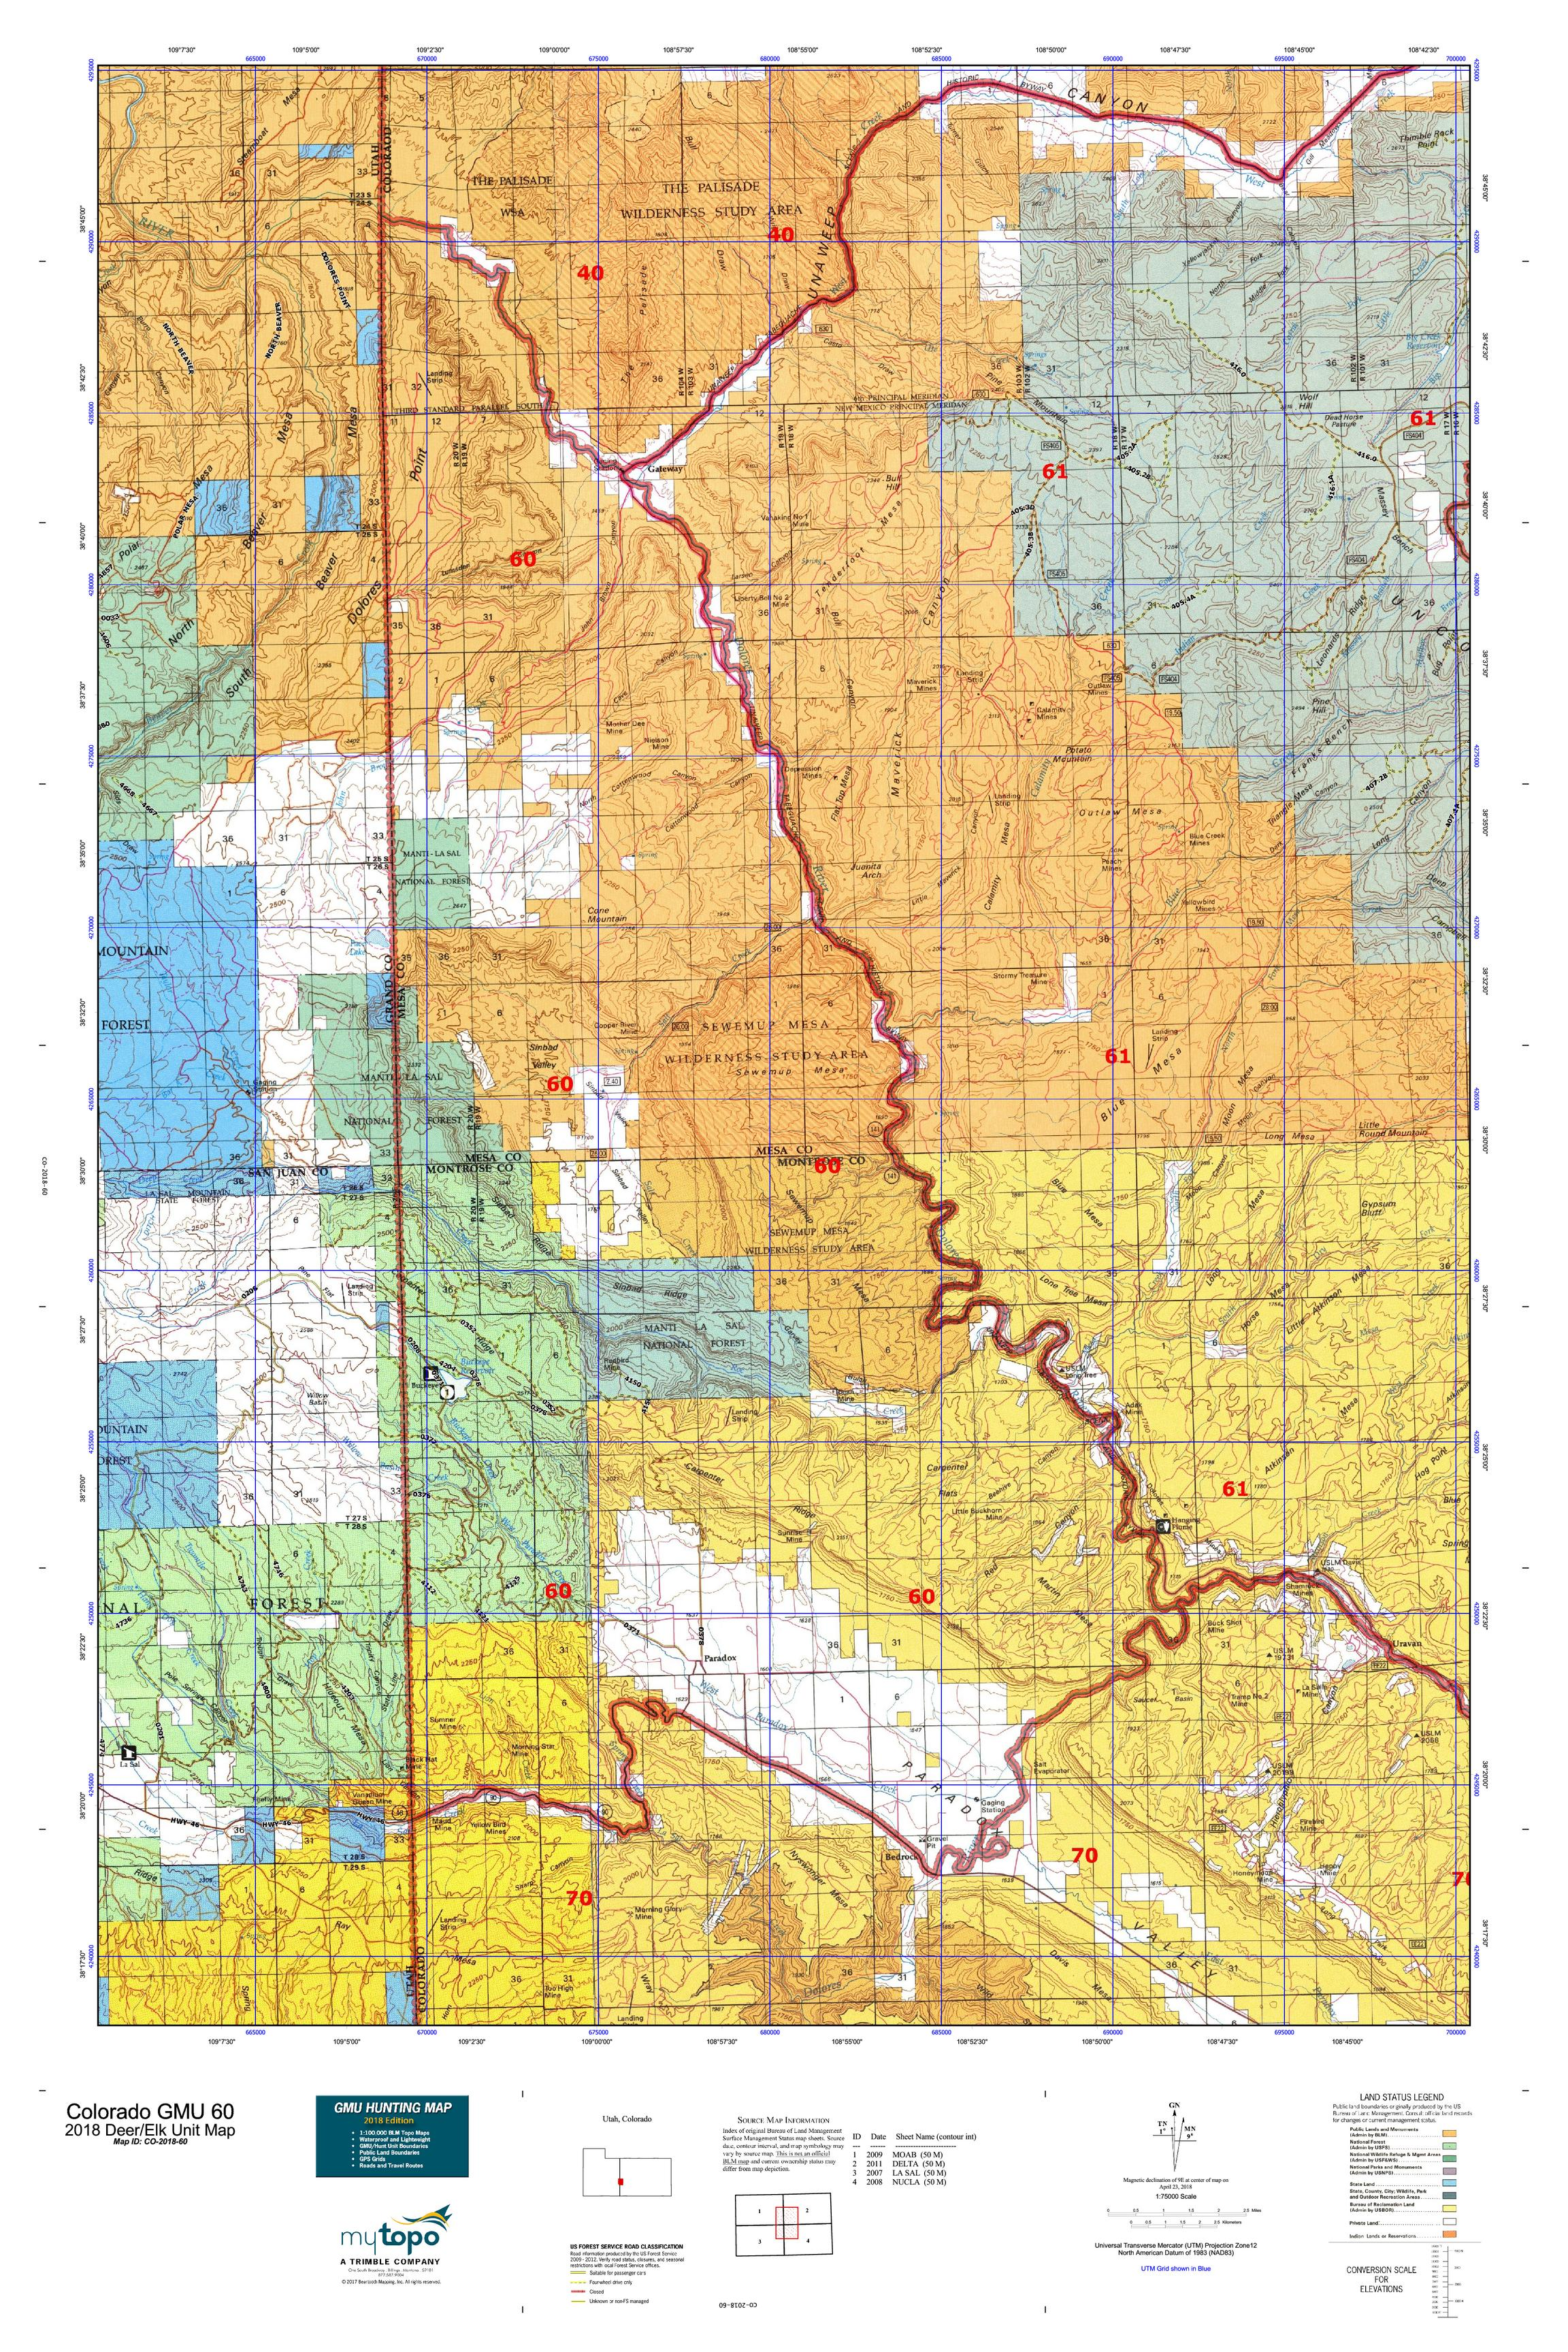 Colorado GMU 60 Map | MyTopo